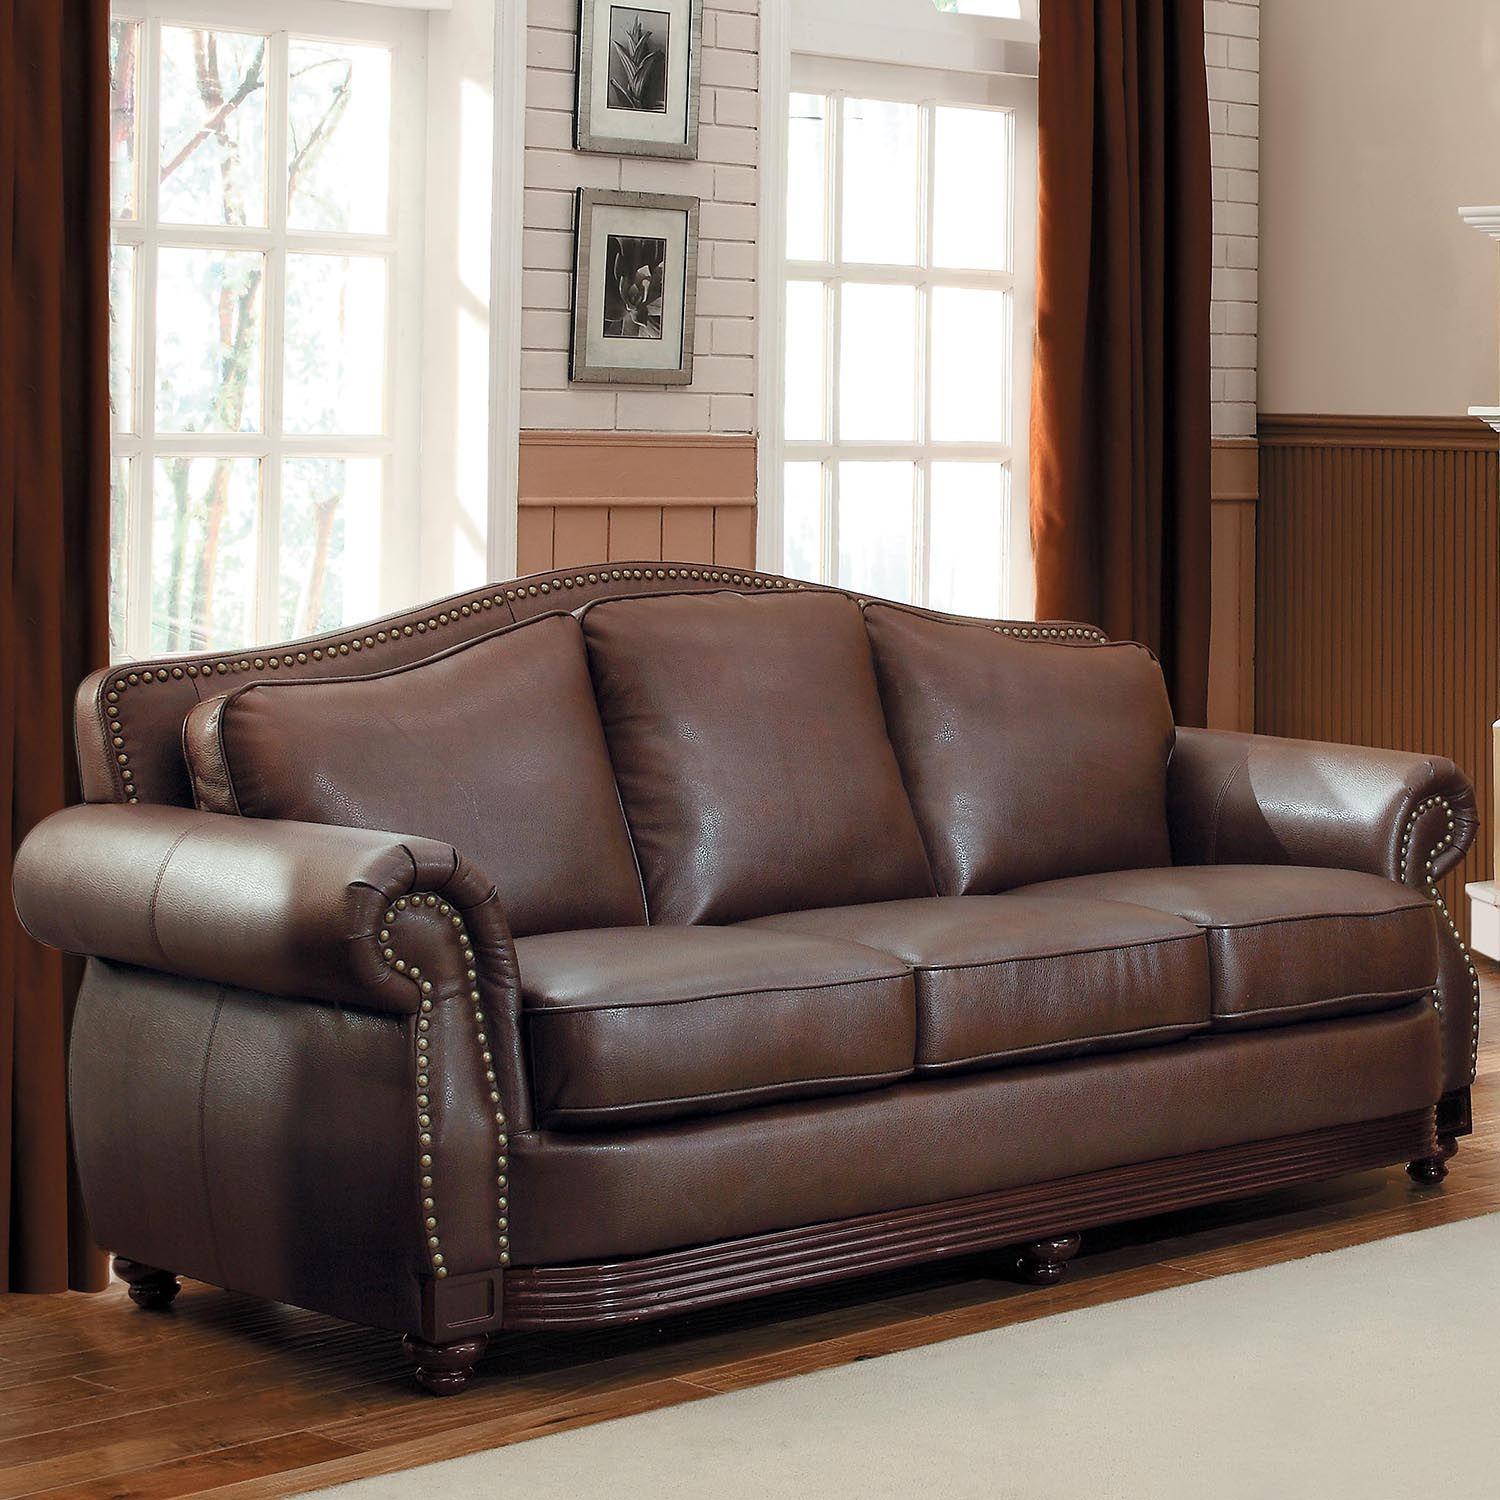 excellent ashley leather sofa and loveseat picture-Lovely ashley Leather sofa and Loveseat Design